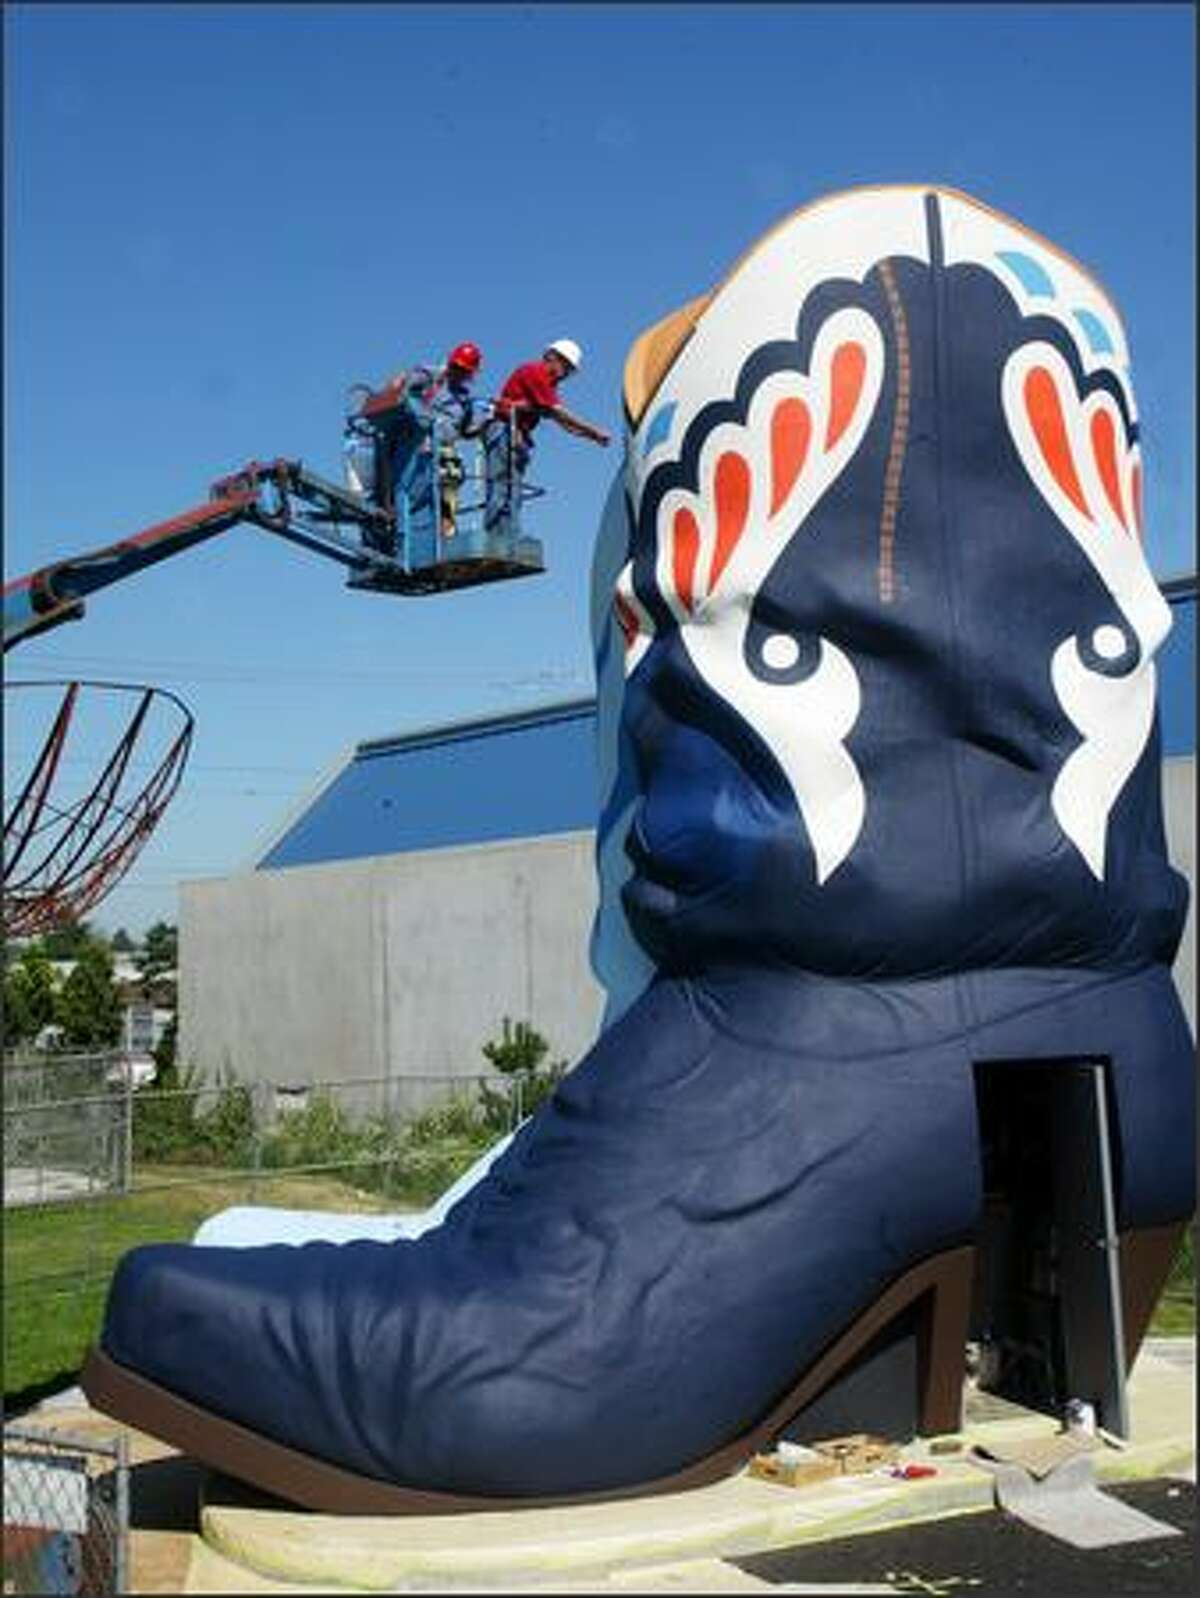 The Hat 'N Boots is repainted in its original colors.